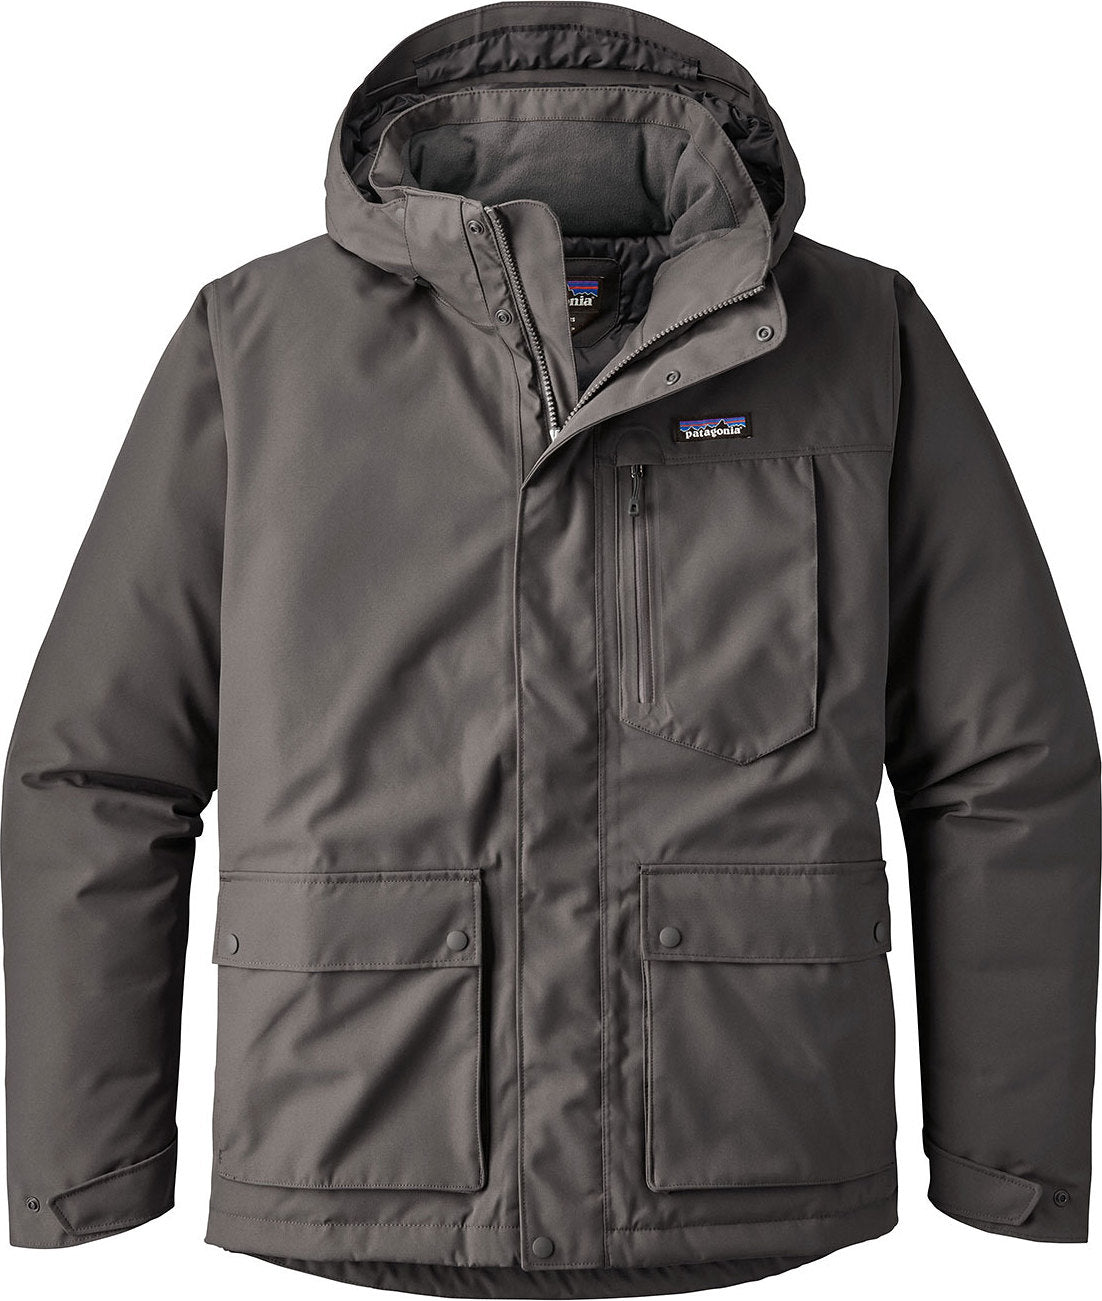 2c6c65415 Topley Insulated Jacket - Men's